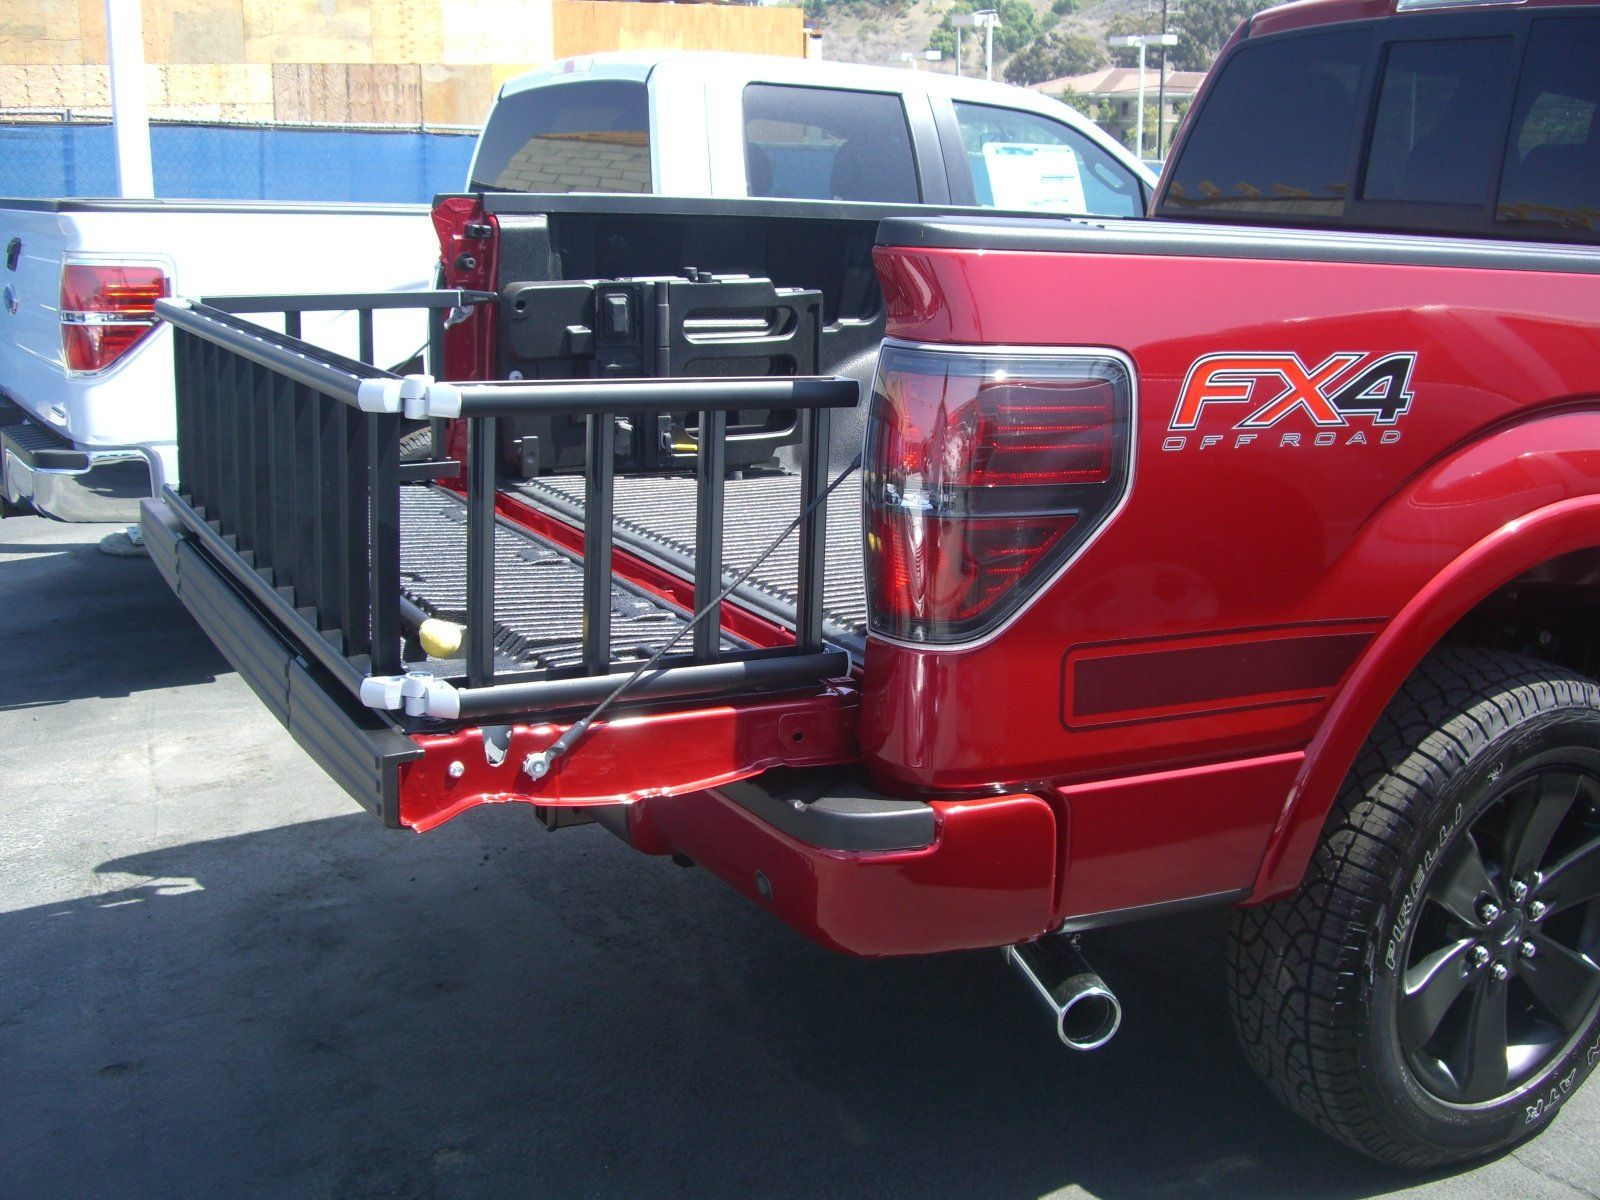 Bed extender motorcycle ramp combined